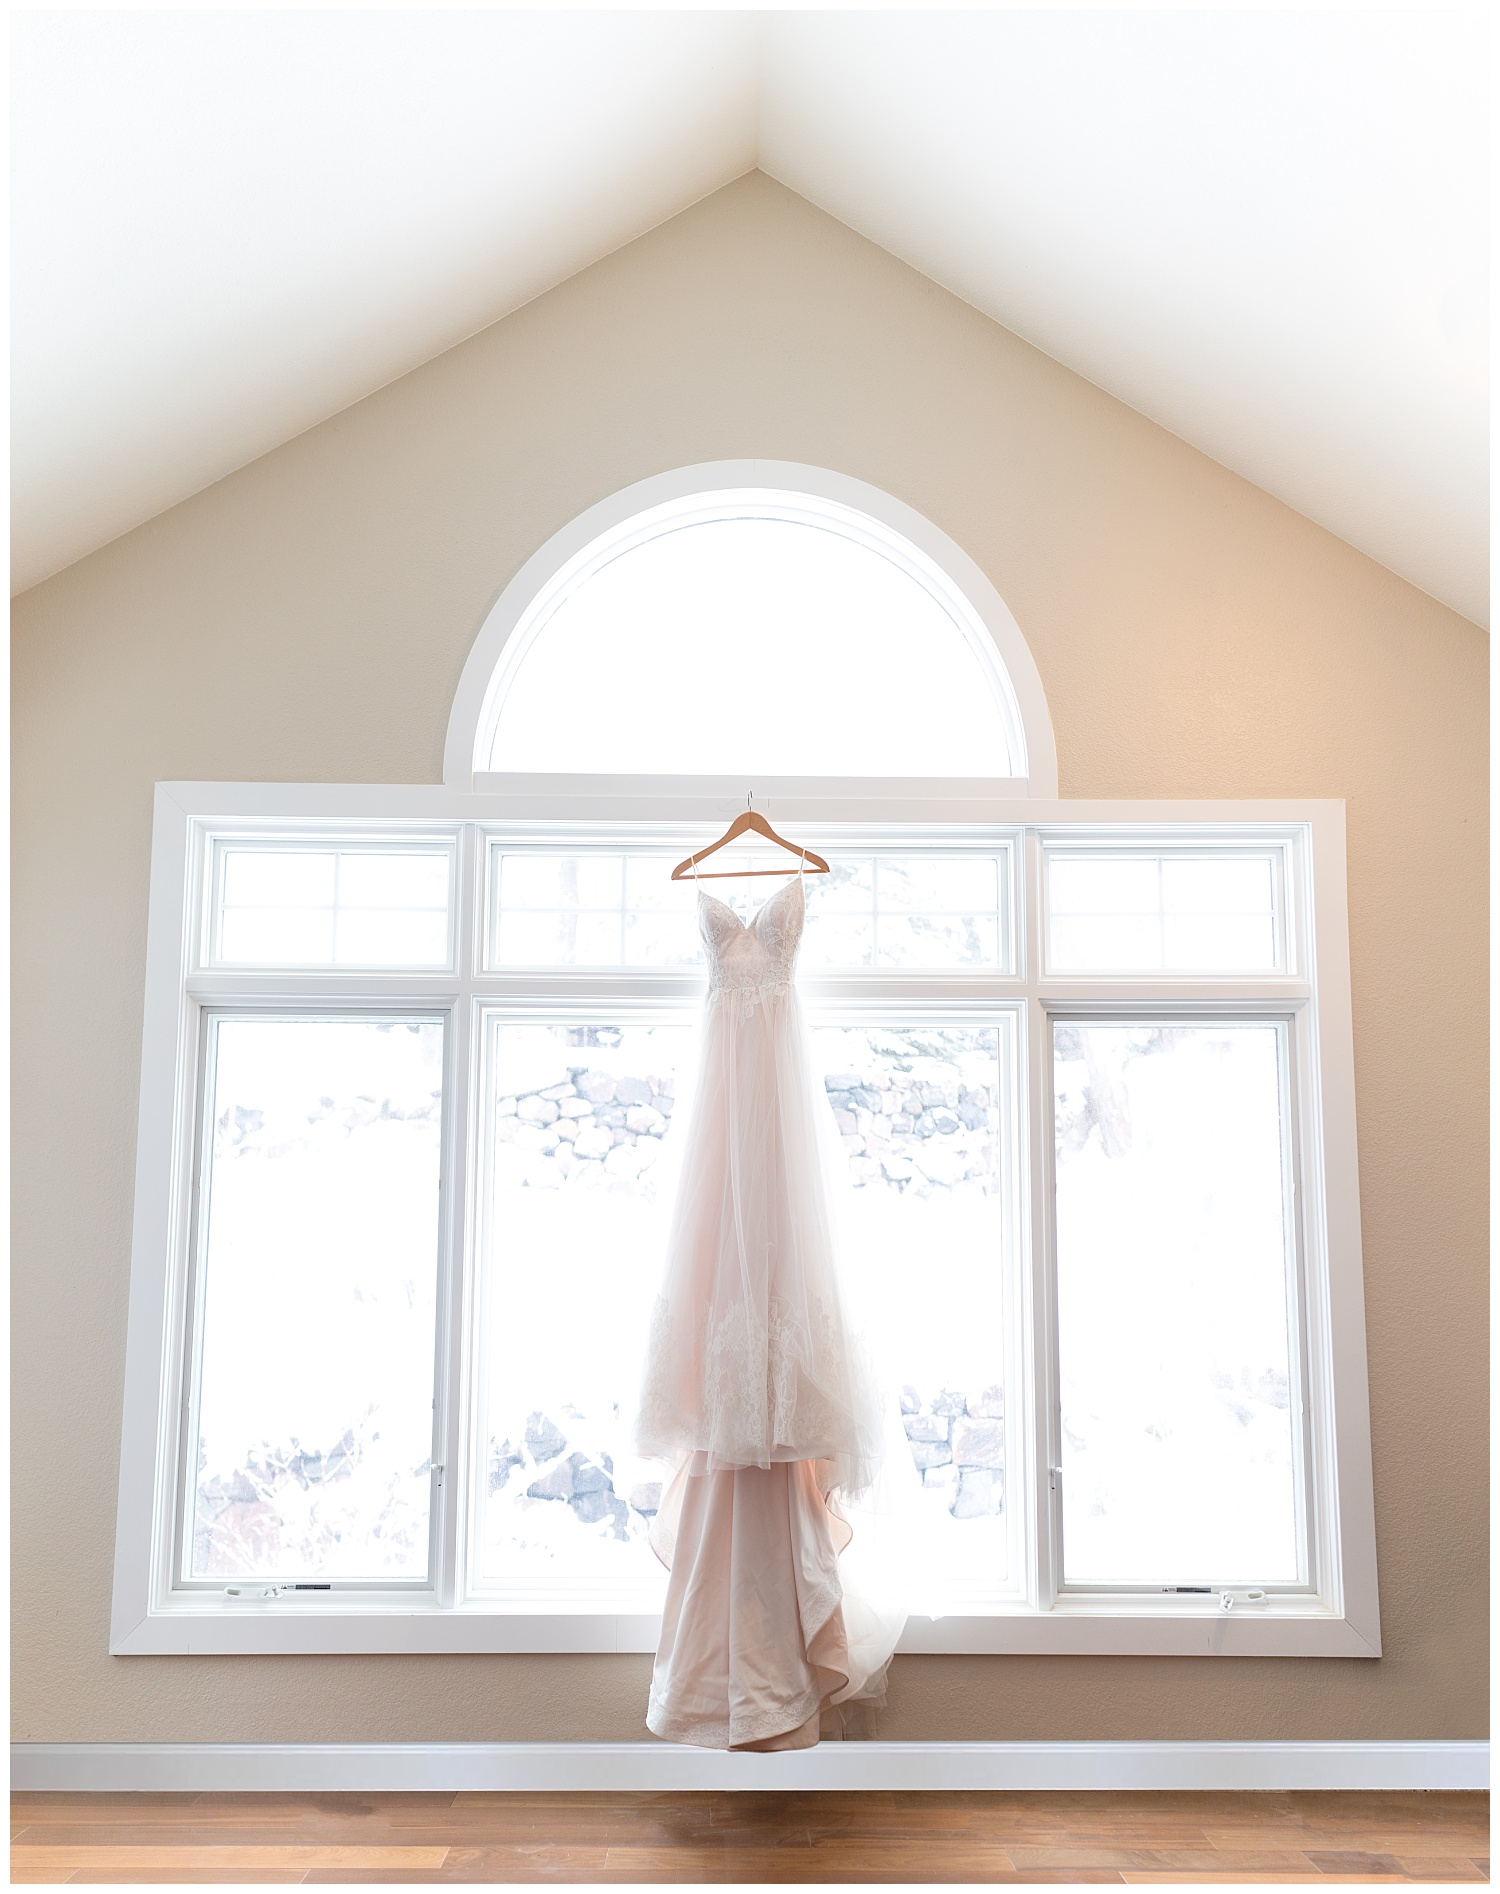 Wedding dress hanging in a brightly lit window